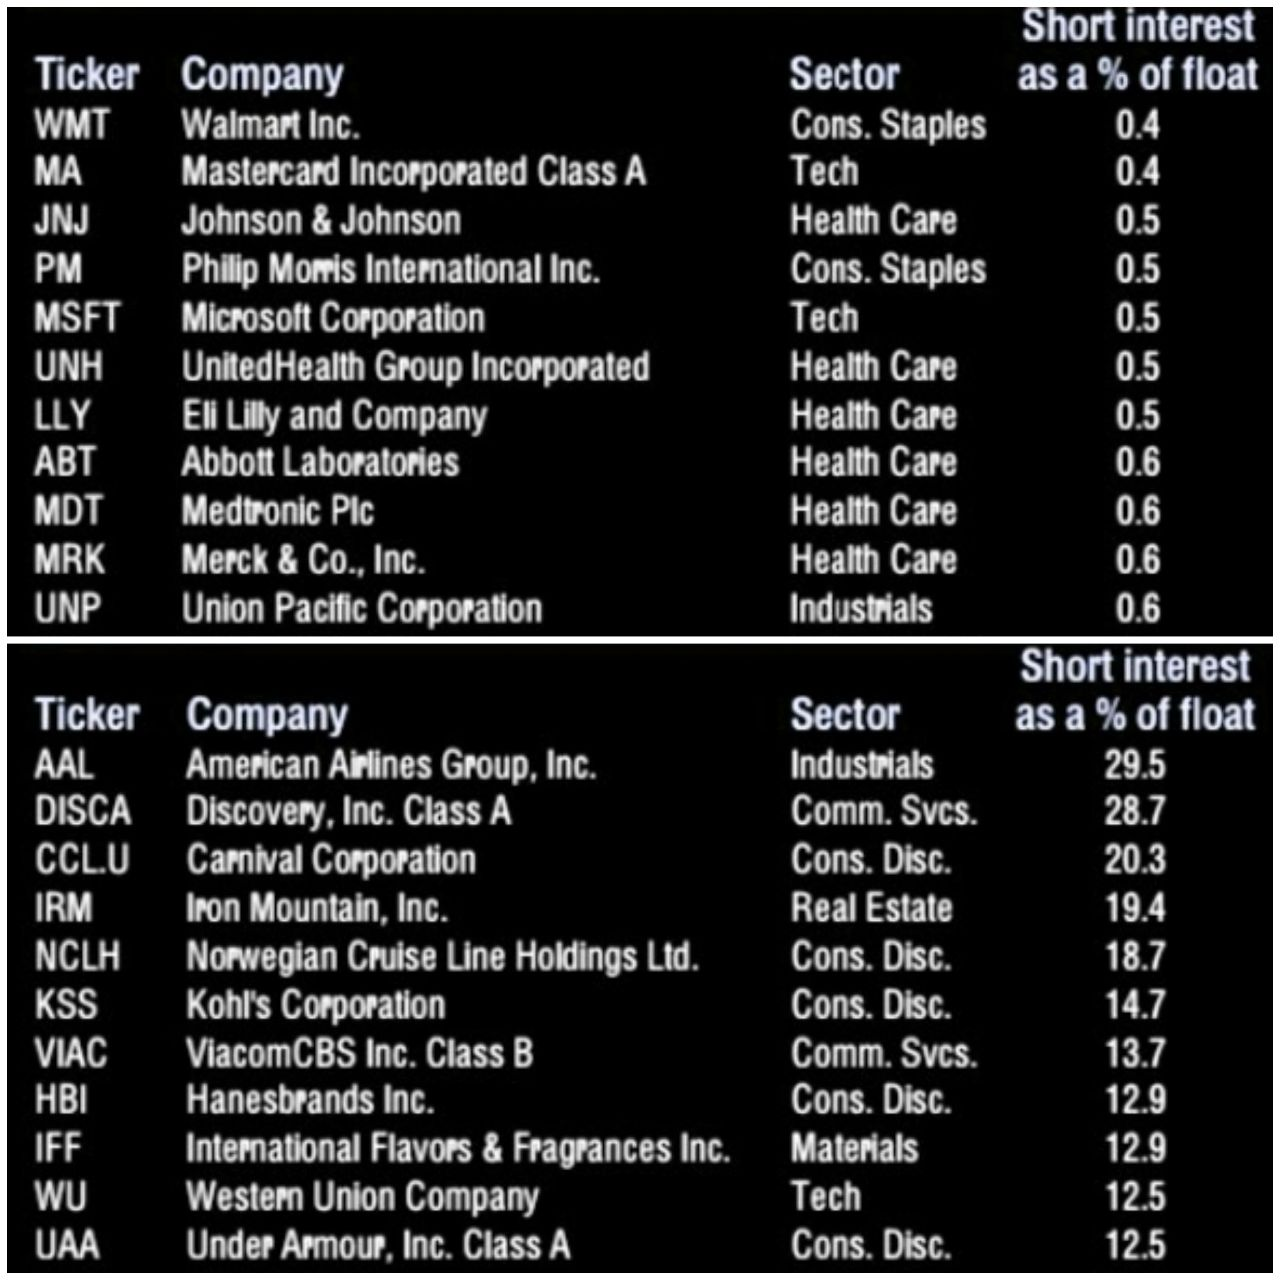 Least and most shorted stocks in the S&P 500